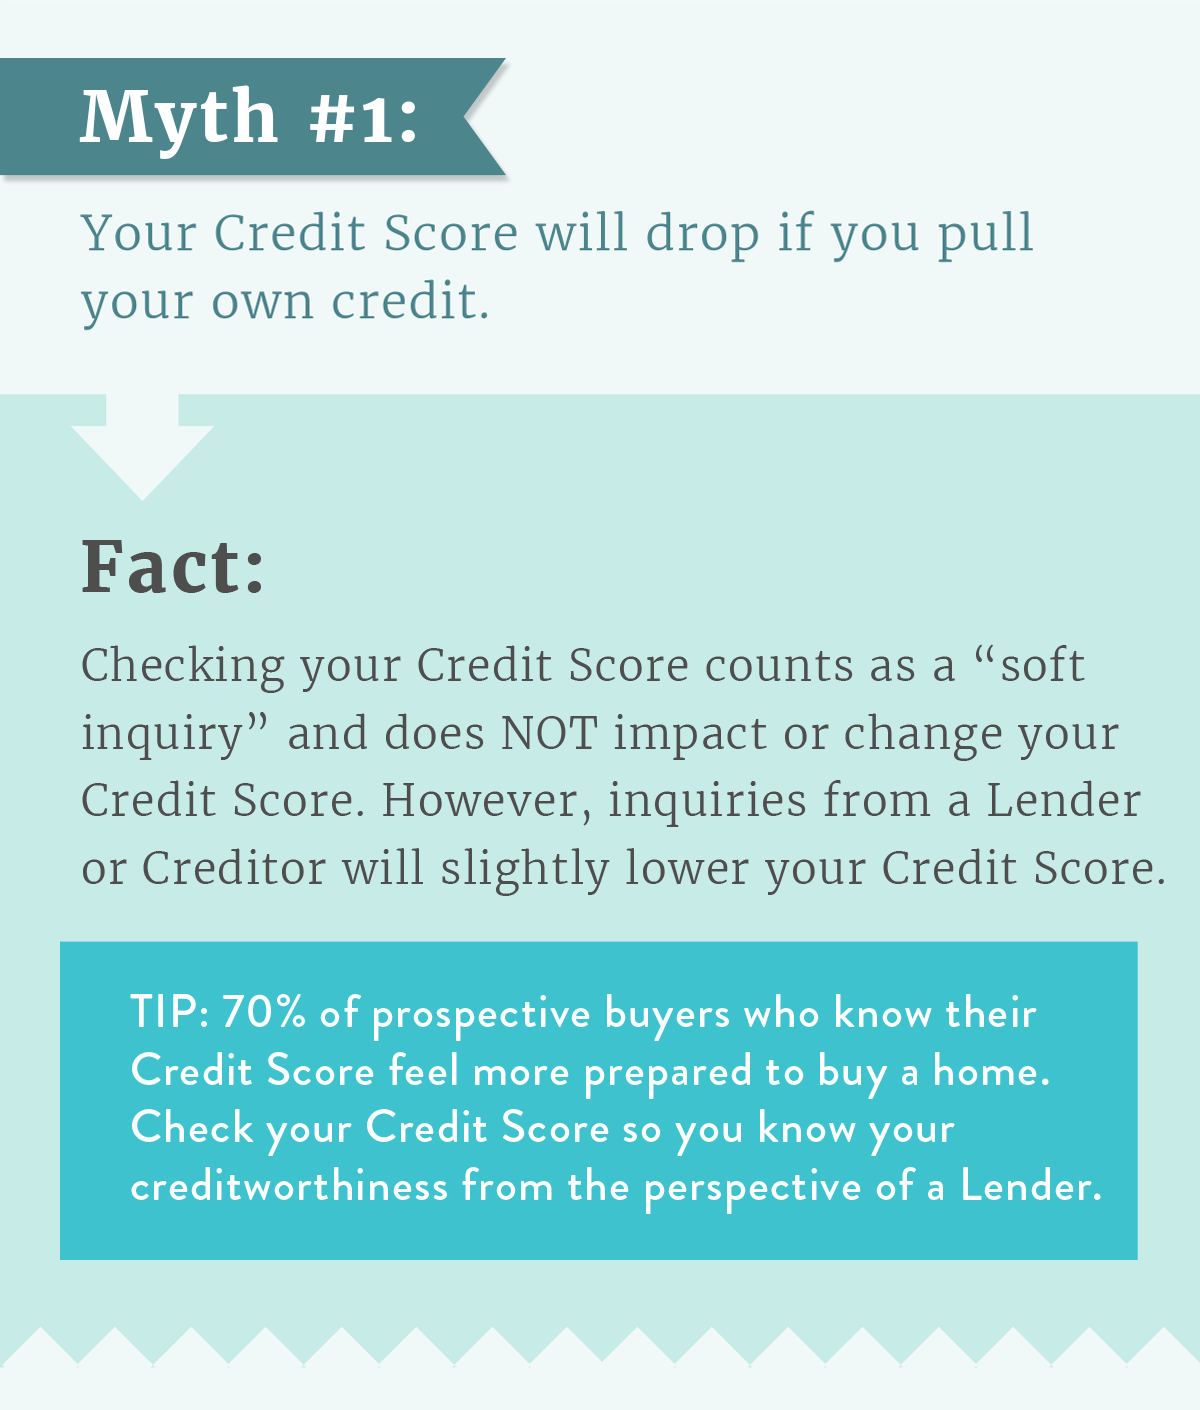 Myth 1 : Your Credit Score will drop if you pull your own credit.